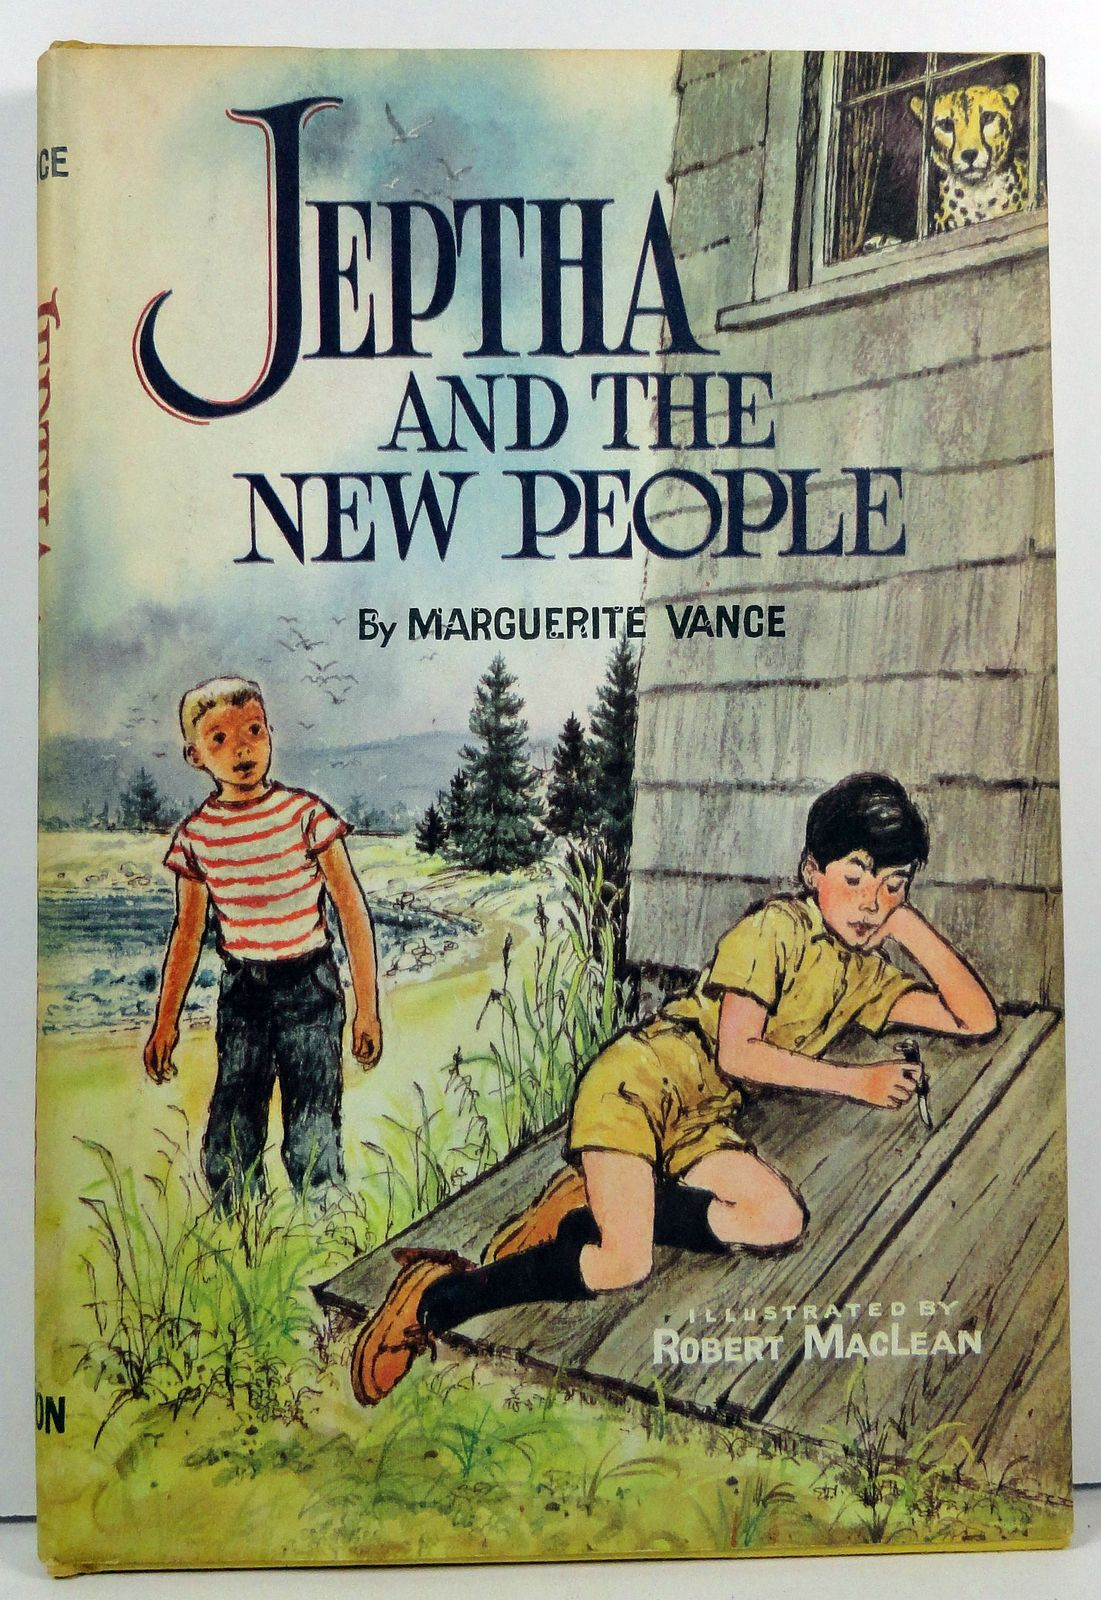 Primary image for Jeptha and the New People by Marguerite Vance 1960 HC/DJ